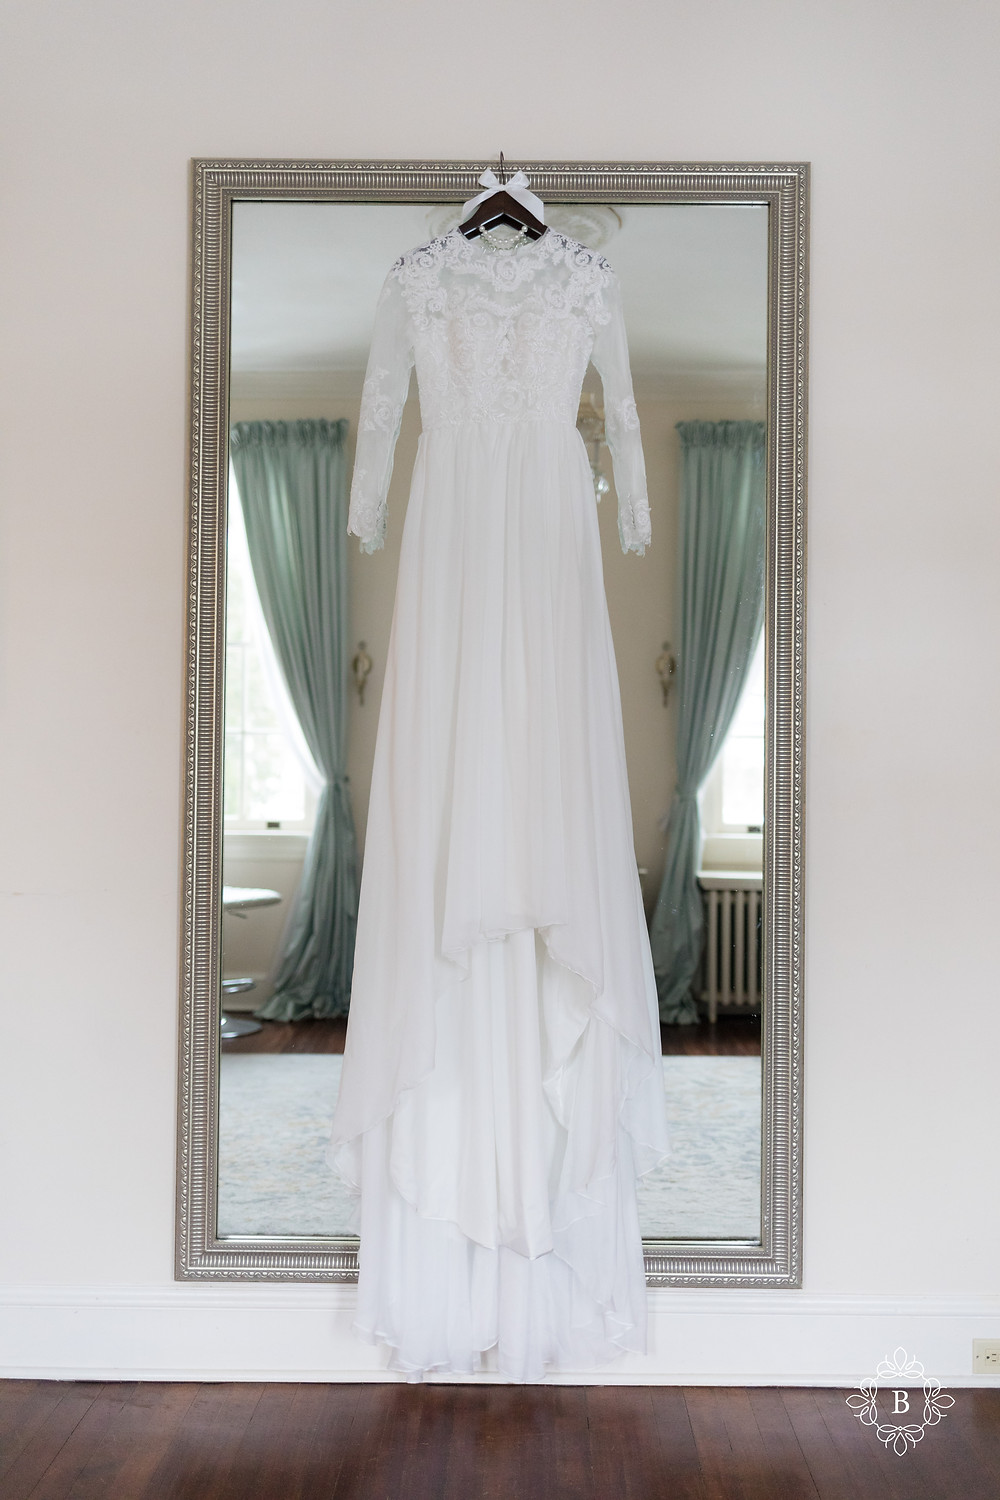 Rust Manor House elegant wedding dress hanging from mirror in bridal suite.